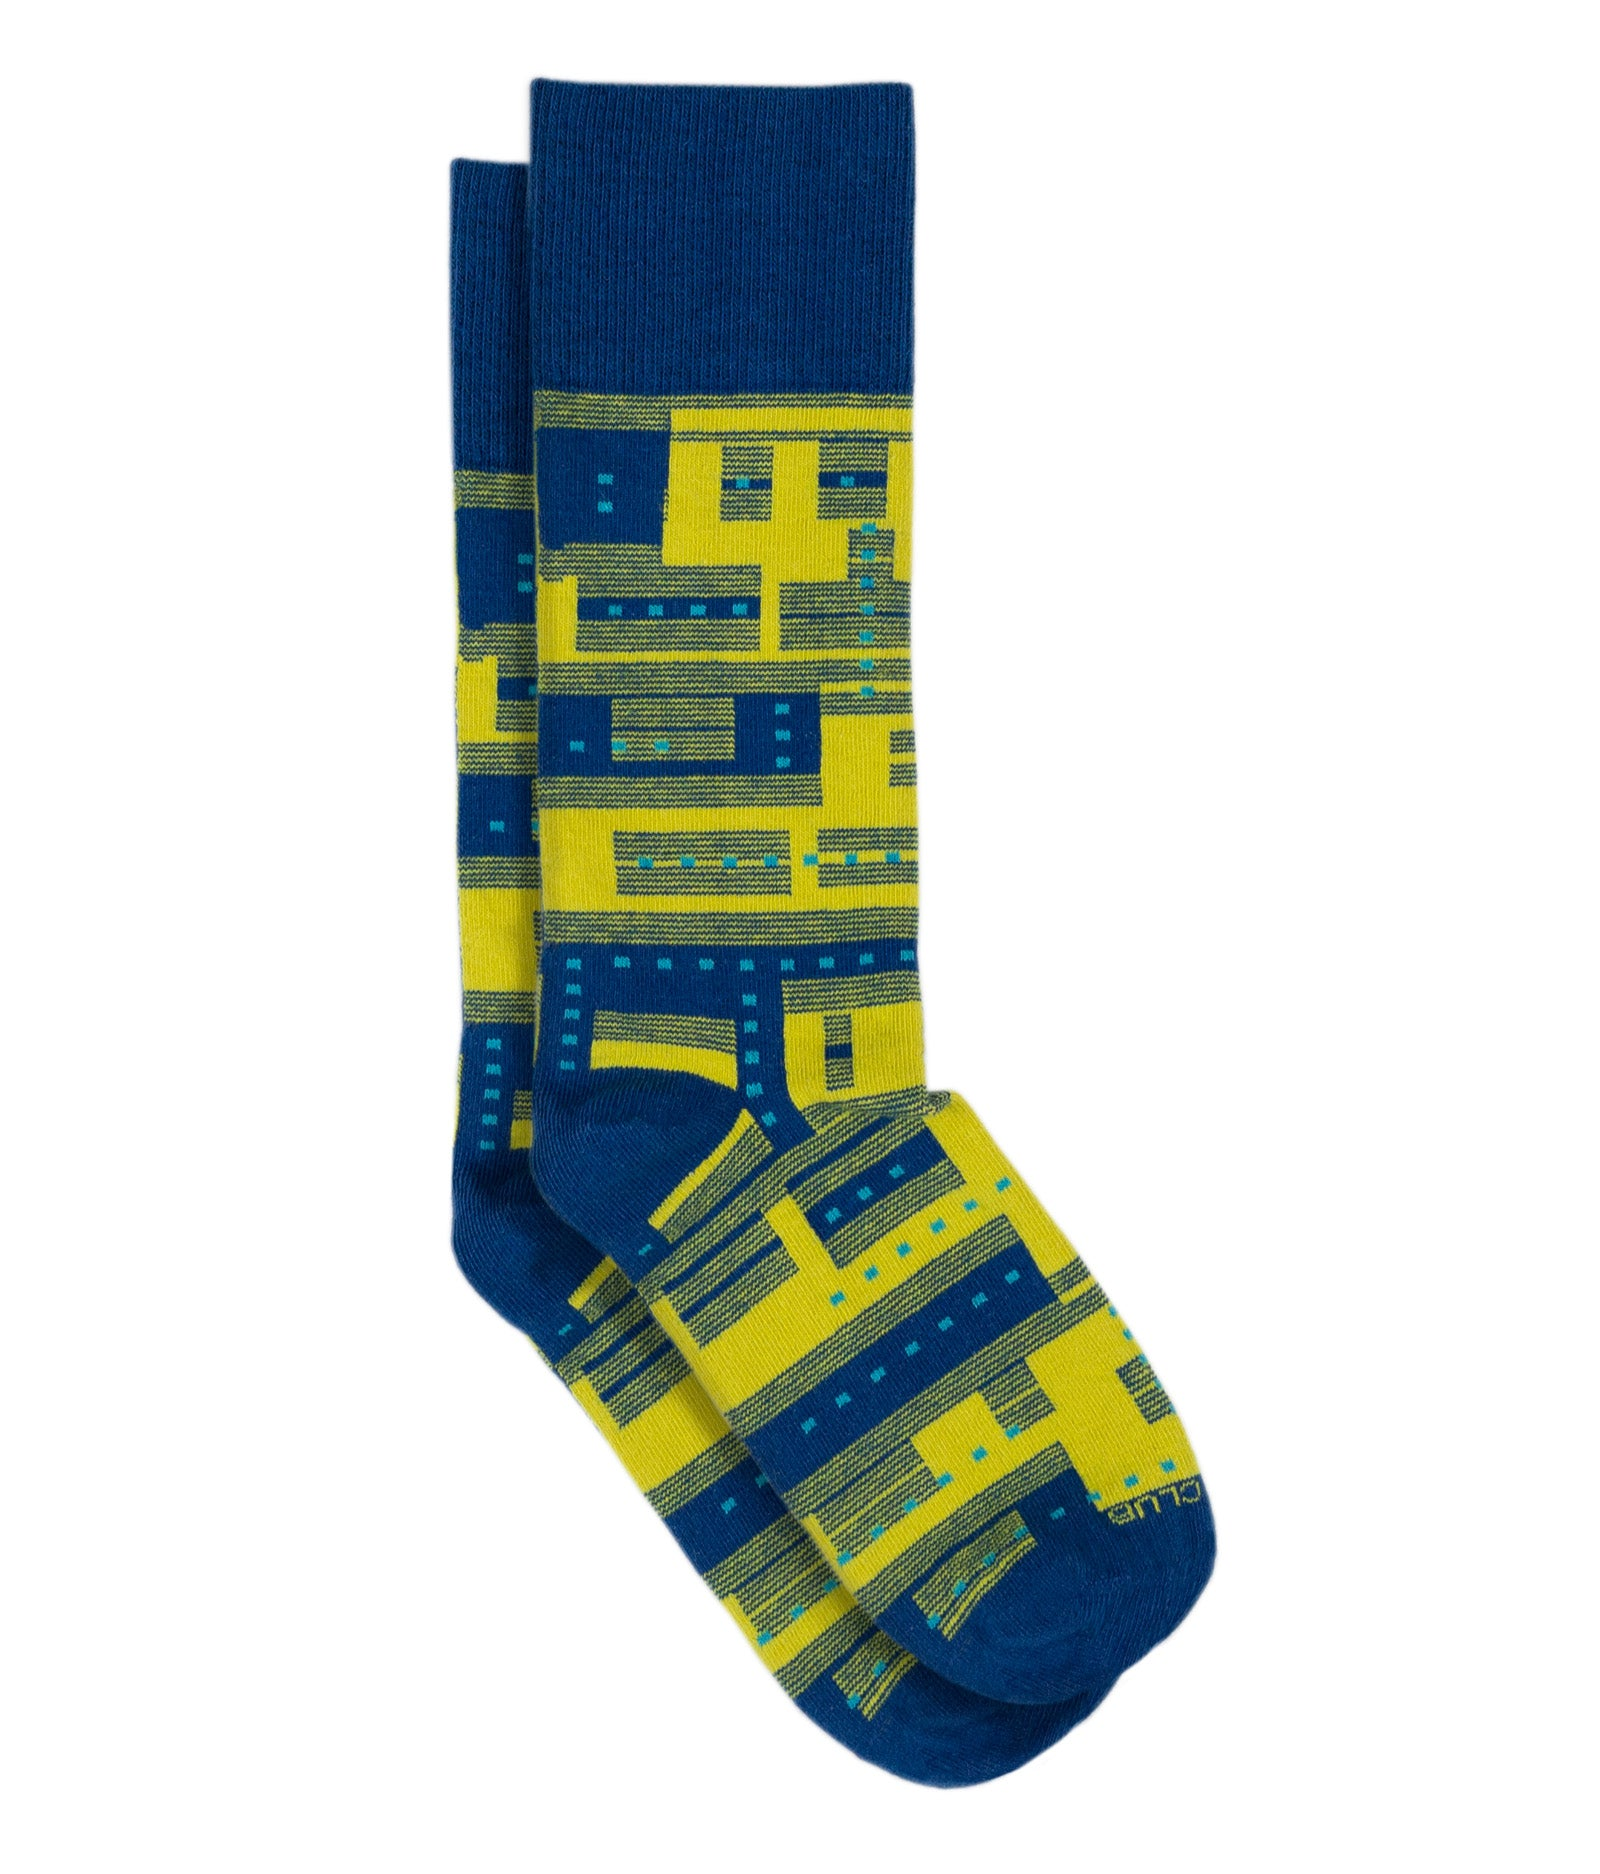 The Glitch - Goldenrod - Sock Club Store